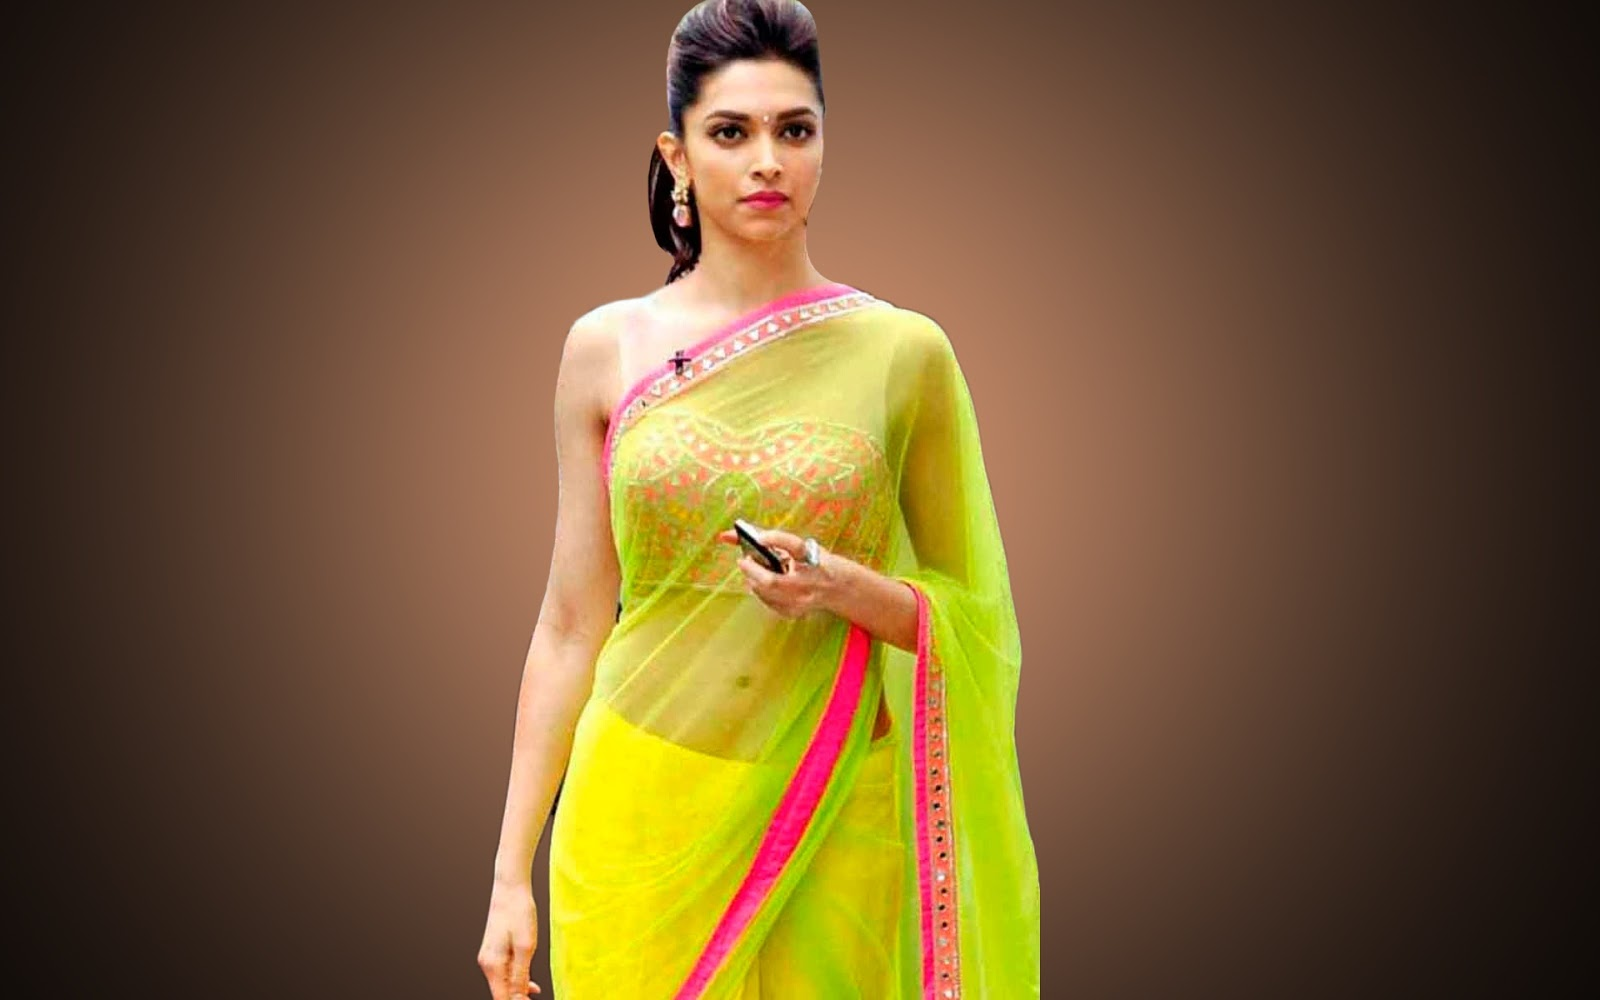 Gorgeous Deepika Padukone in saree Photos| Deepika ...